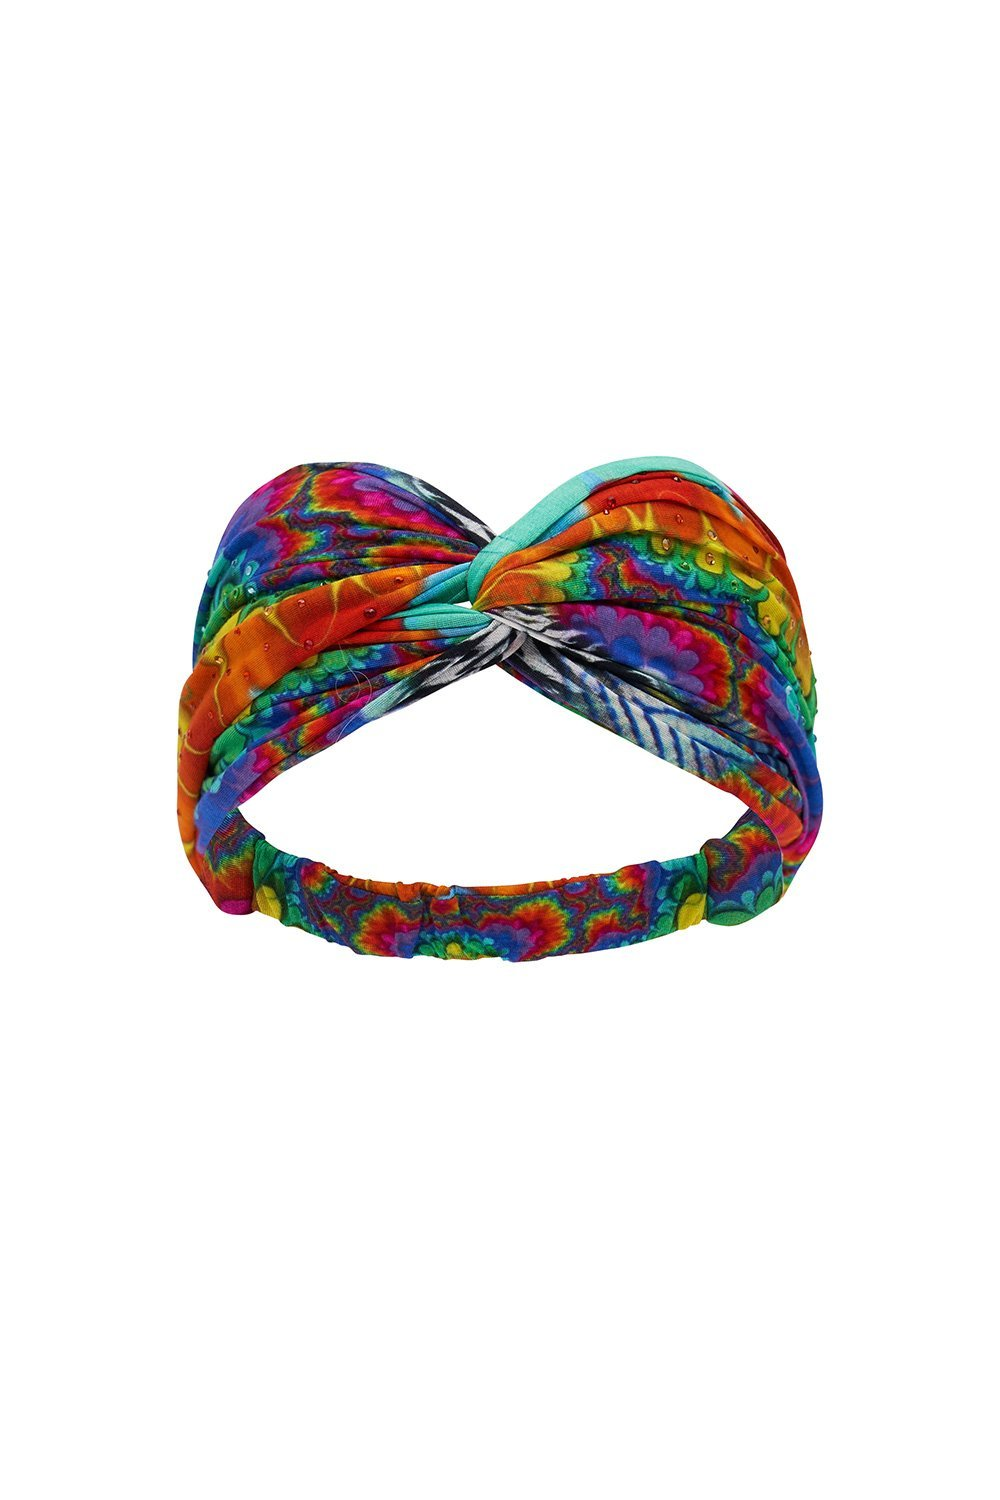 ACTIVE TWIST HEADBAND RAINBOW GATHERING